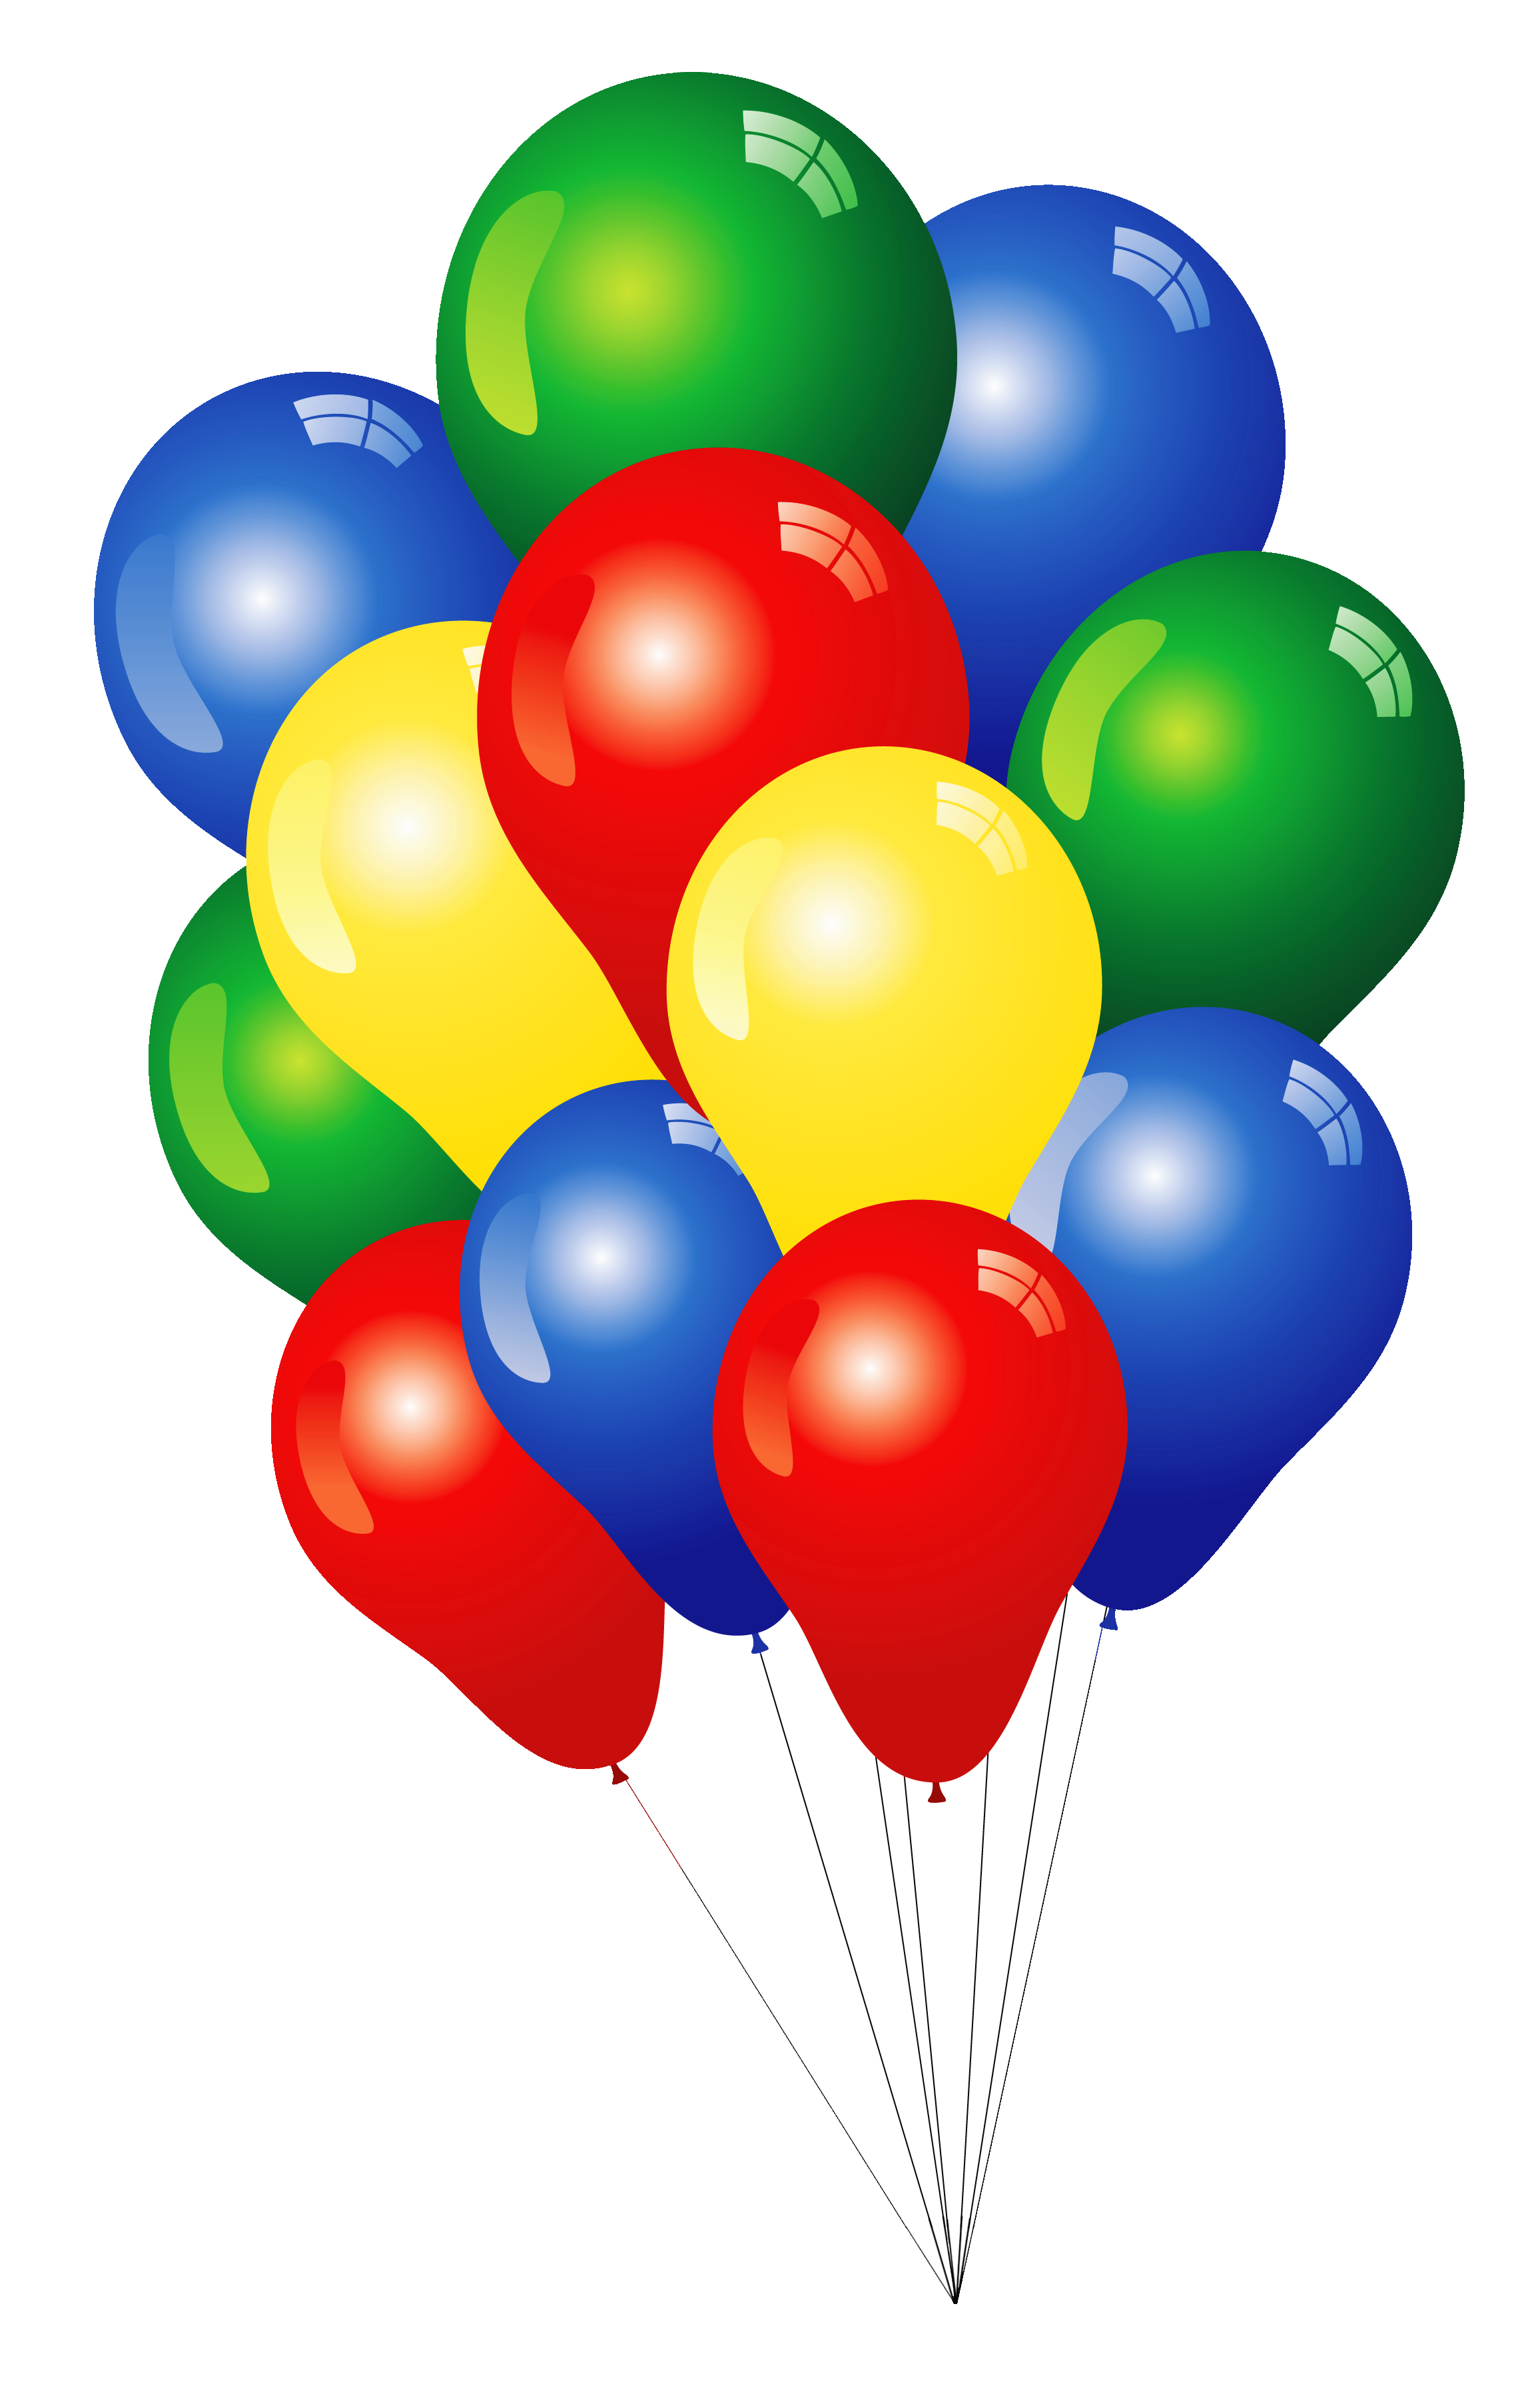 free clip art balloons pinterest clip art clip art rh pinterest co uk free balloon clip art border free balloon clipart to cut and paste